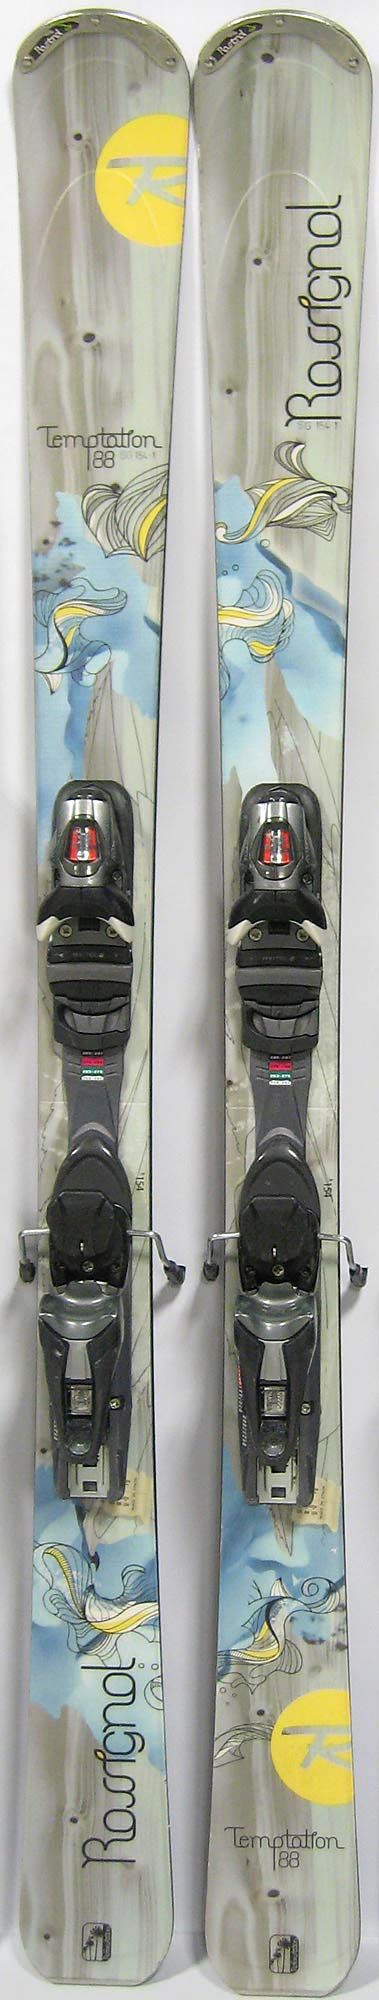 Topsheets of 2012 Rossignol Temptation 88 Skis For Sale